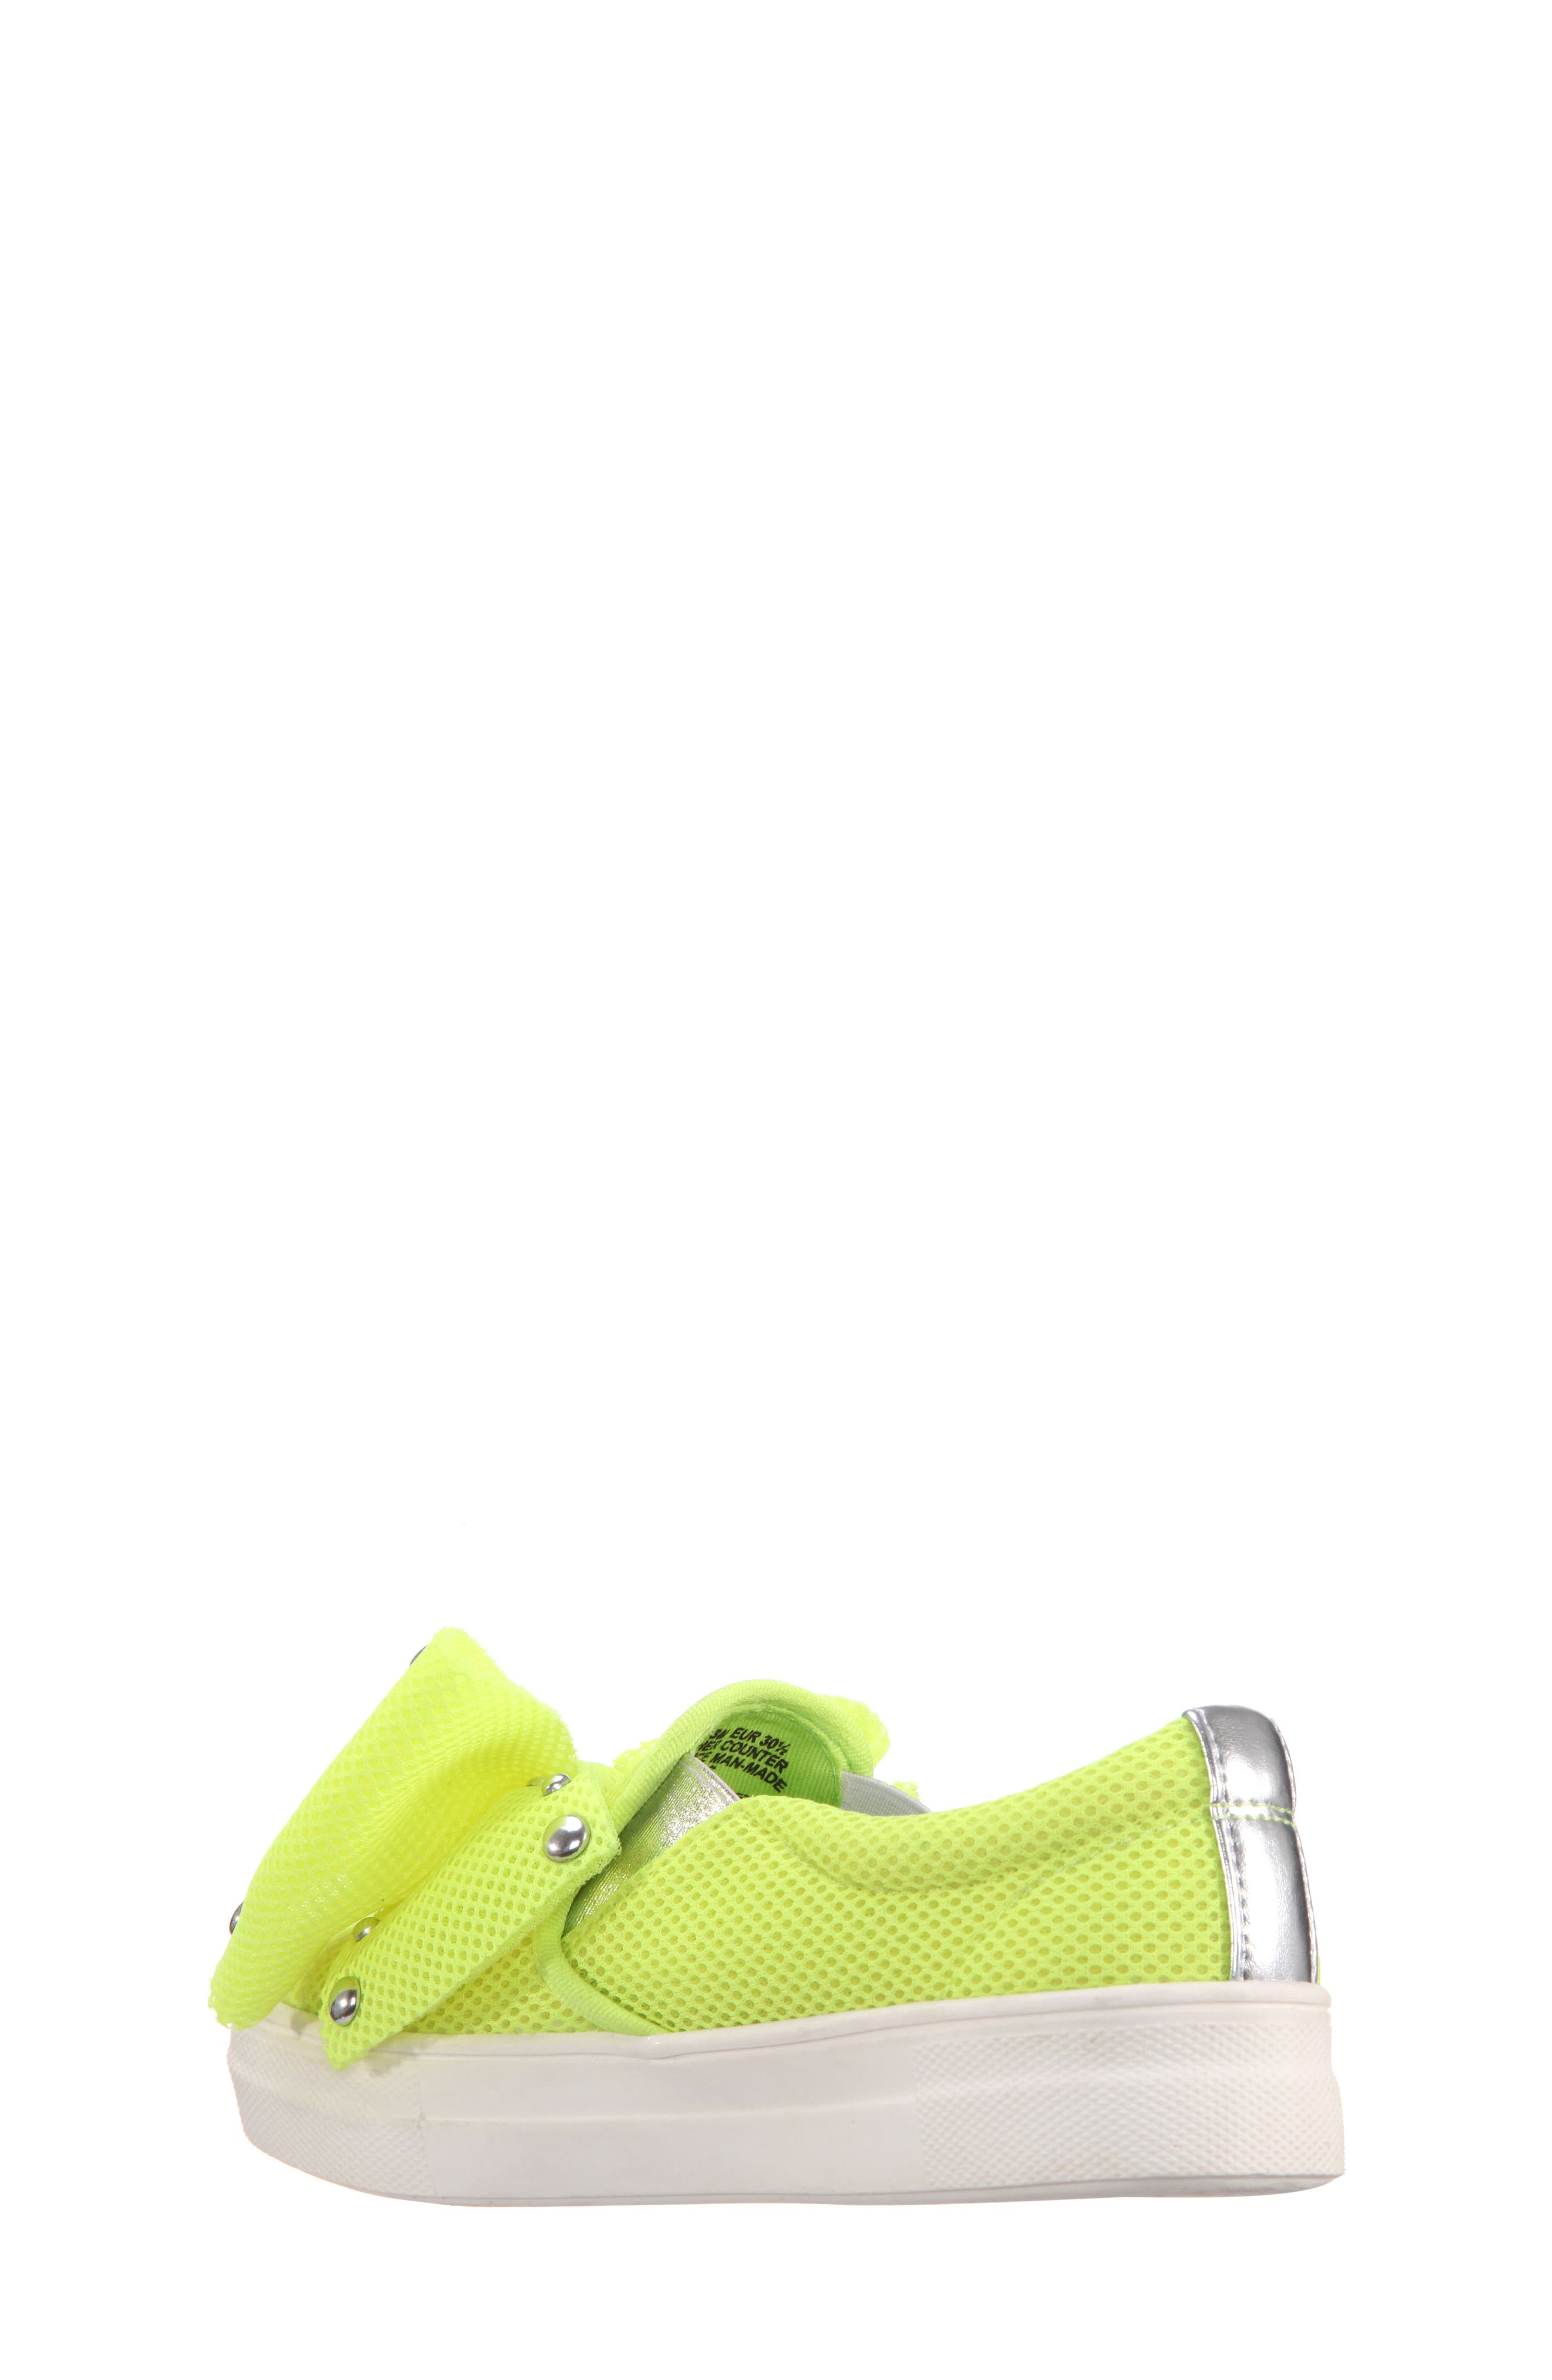 Mary Bow Slip-On Sneaker,                             Alternate thumbnail 2, color,                             Neon Yellow Mesh